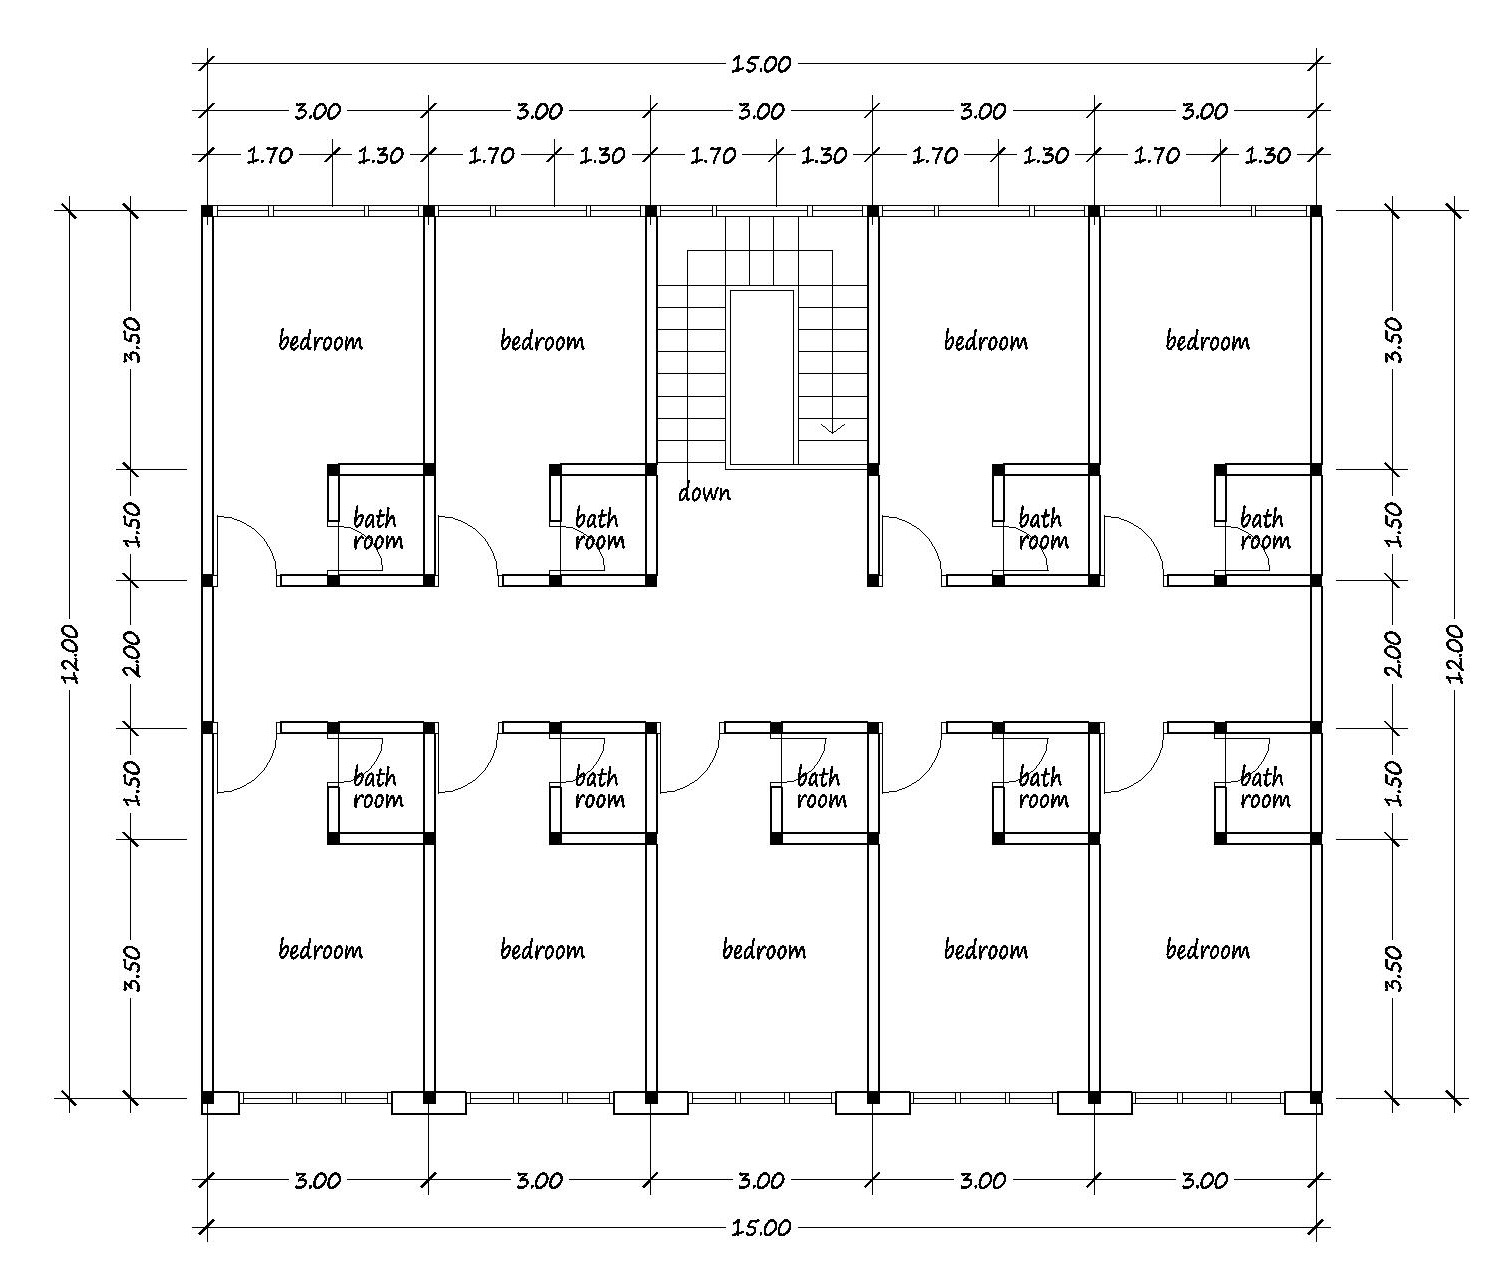 House plans for you plans image design and about house for Home designs and floor plans